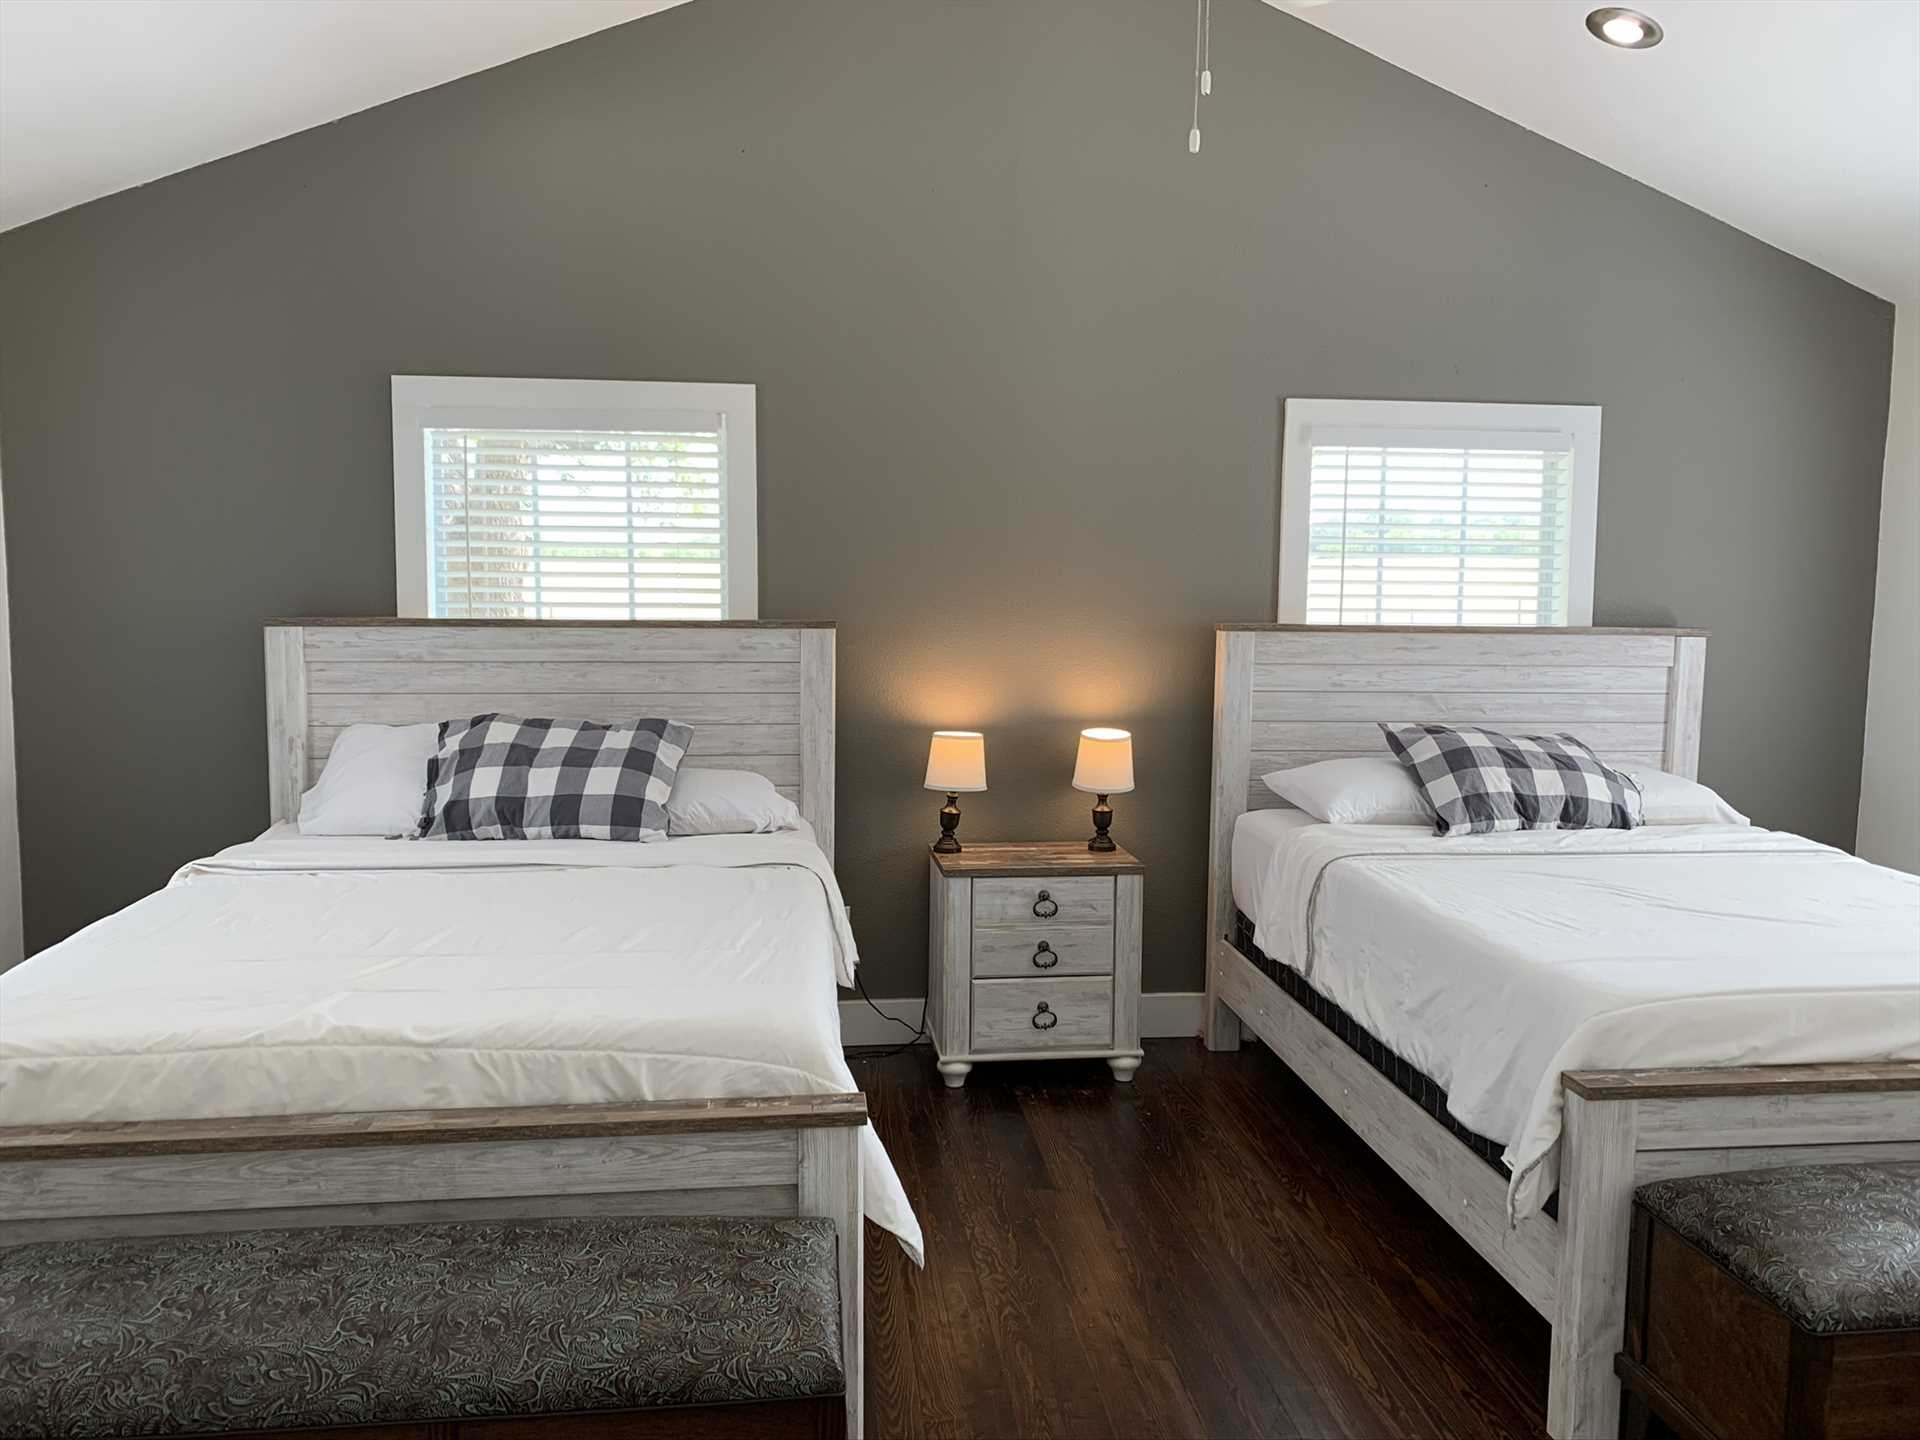 Two nicely-matched queen-sized beds provide luxurious comfort for up to four guests in the second bedroom. All told, the Retreat sleeps up to six.